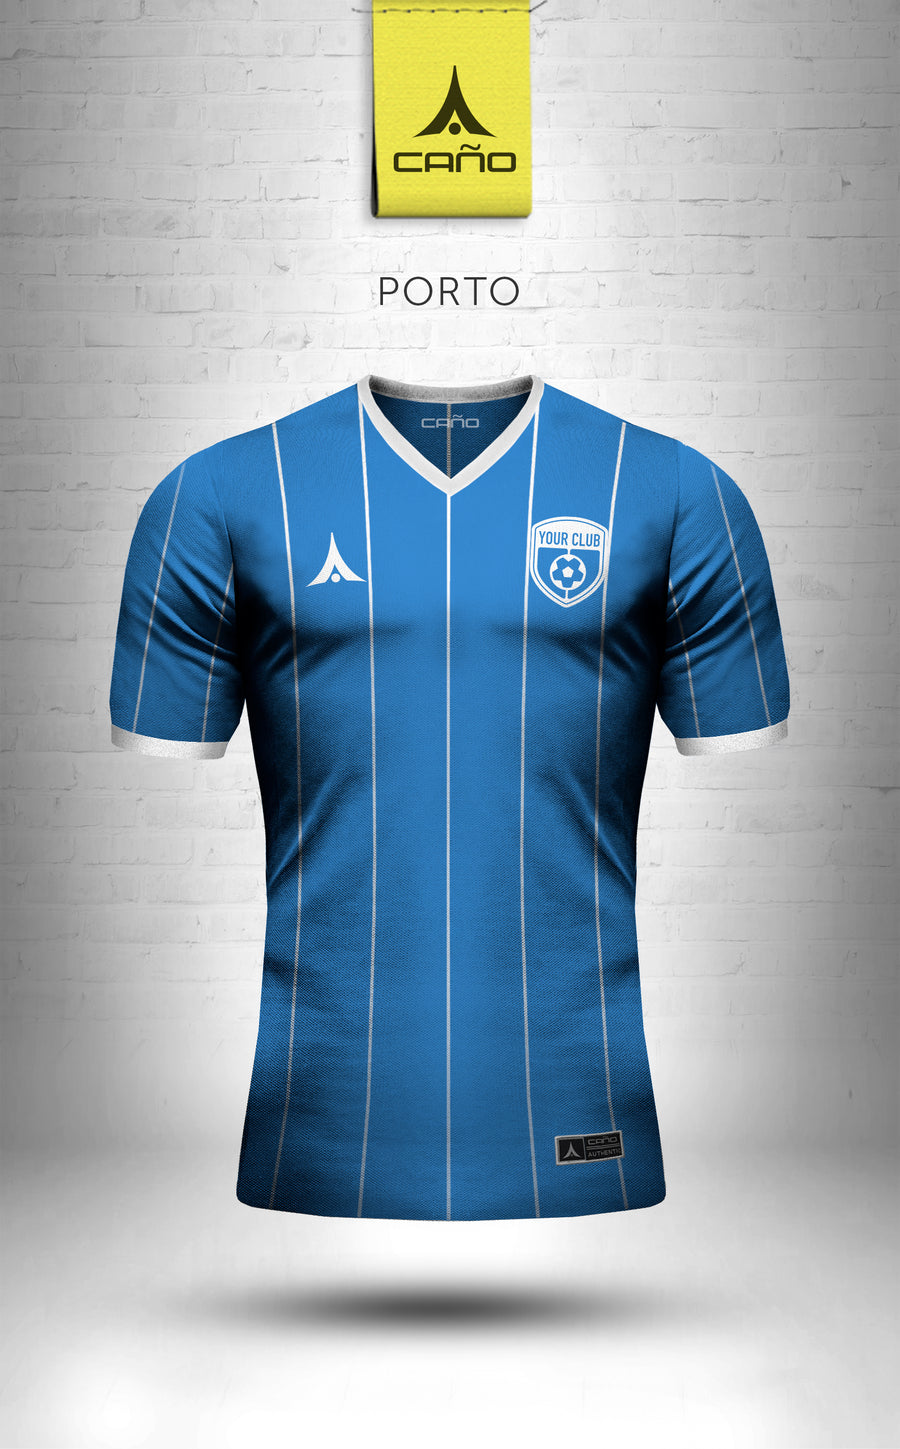 Porto in royal/white